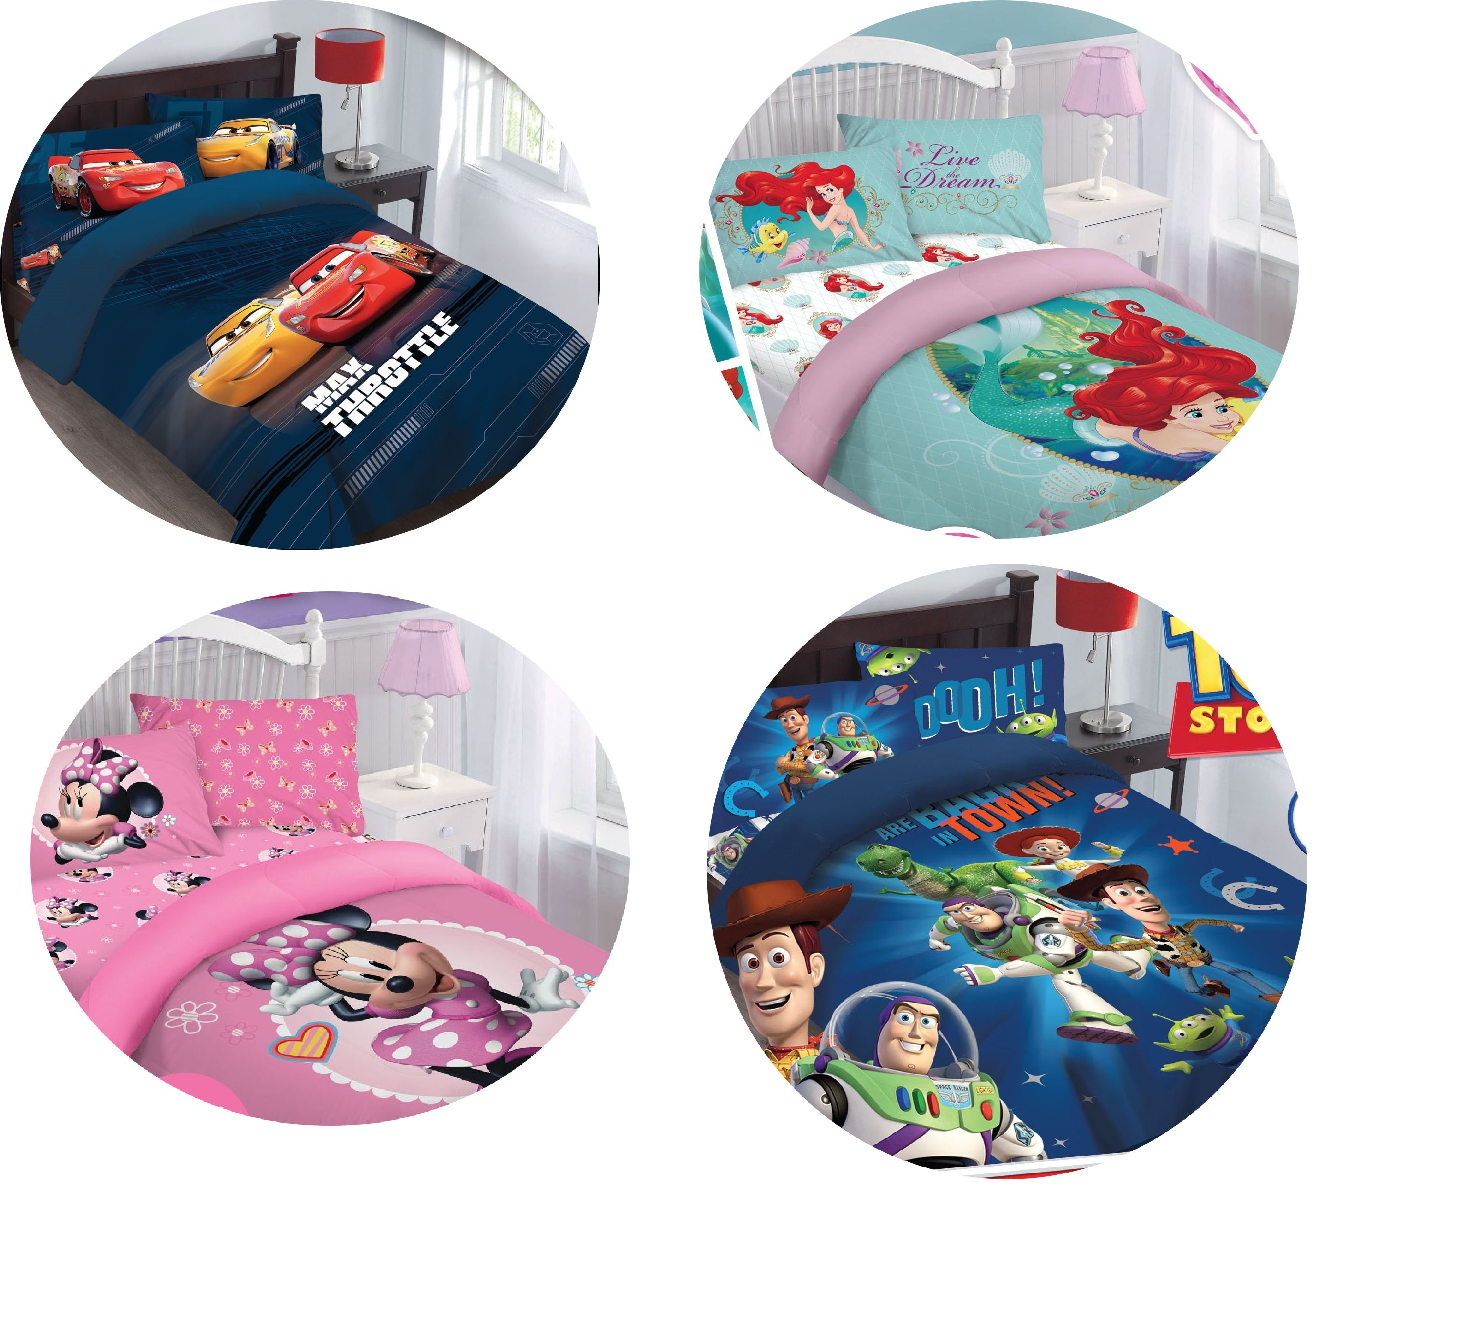 REVERSIBLE DISNEY CARTOONS BEDDING BED COMFORTER SET 3-4PC A